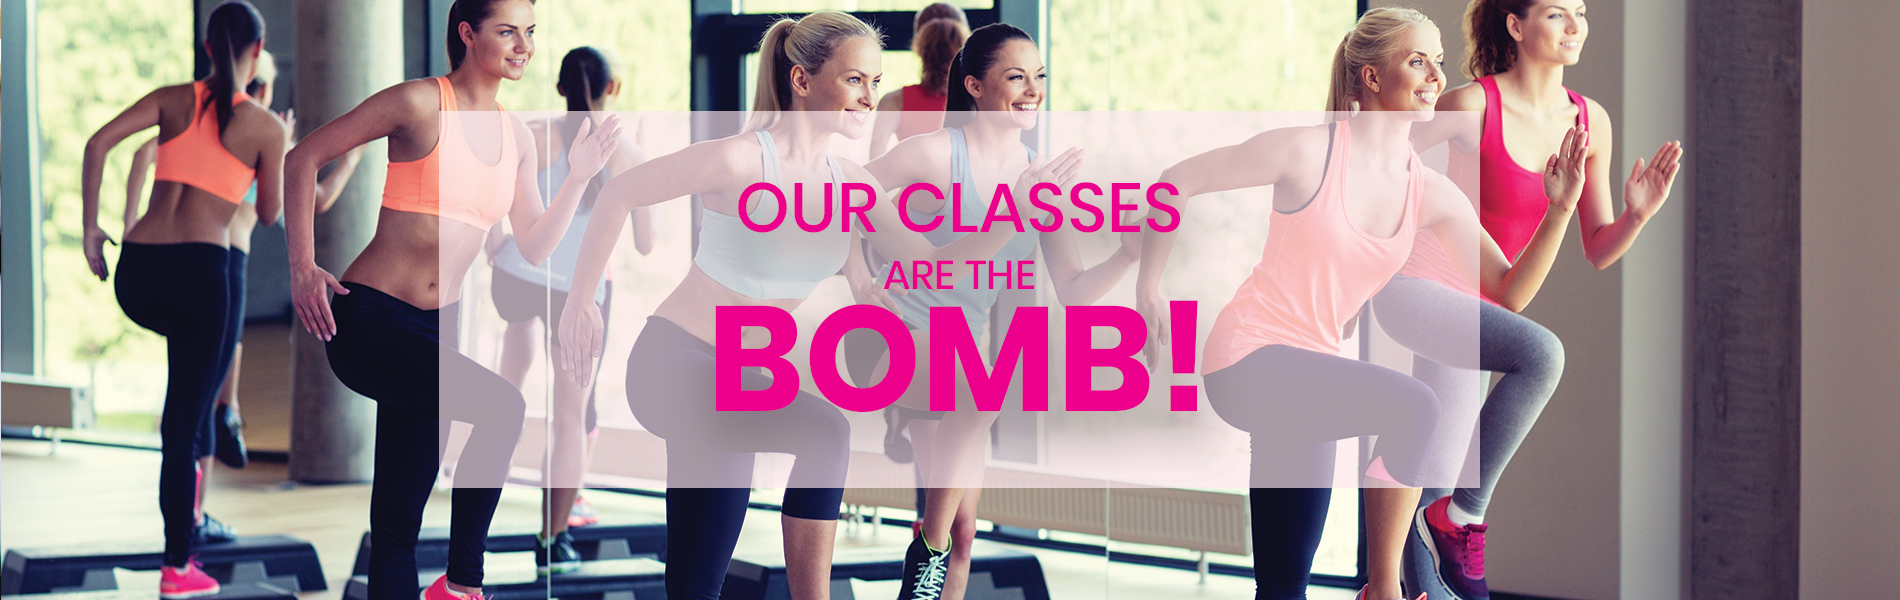 Our classes are the bomb!